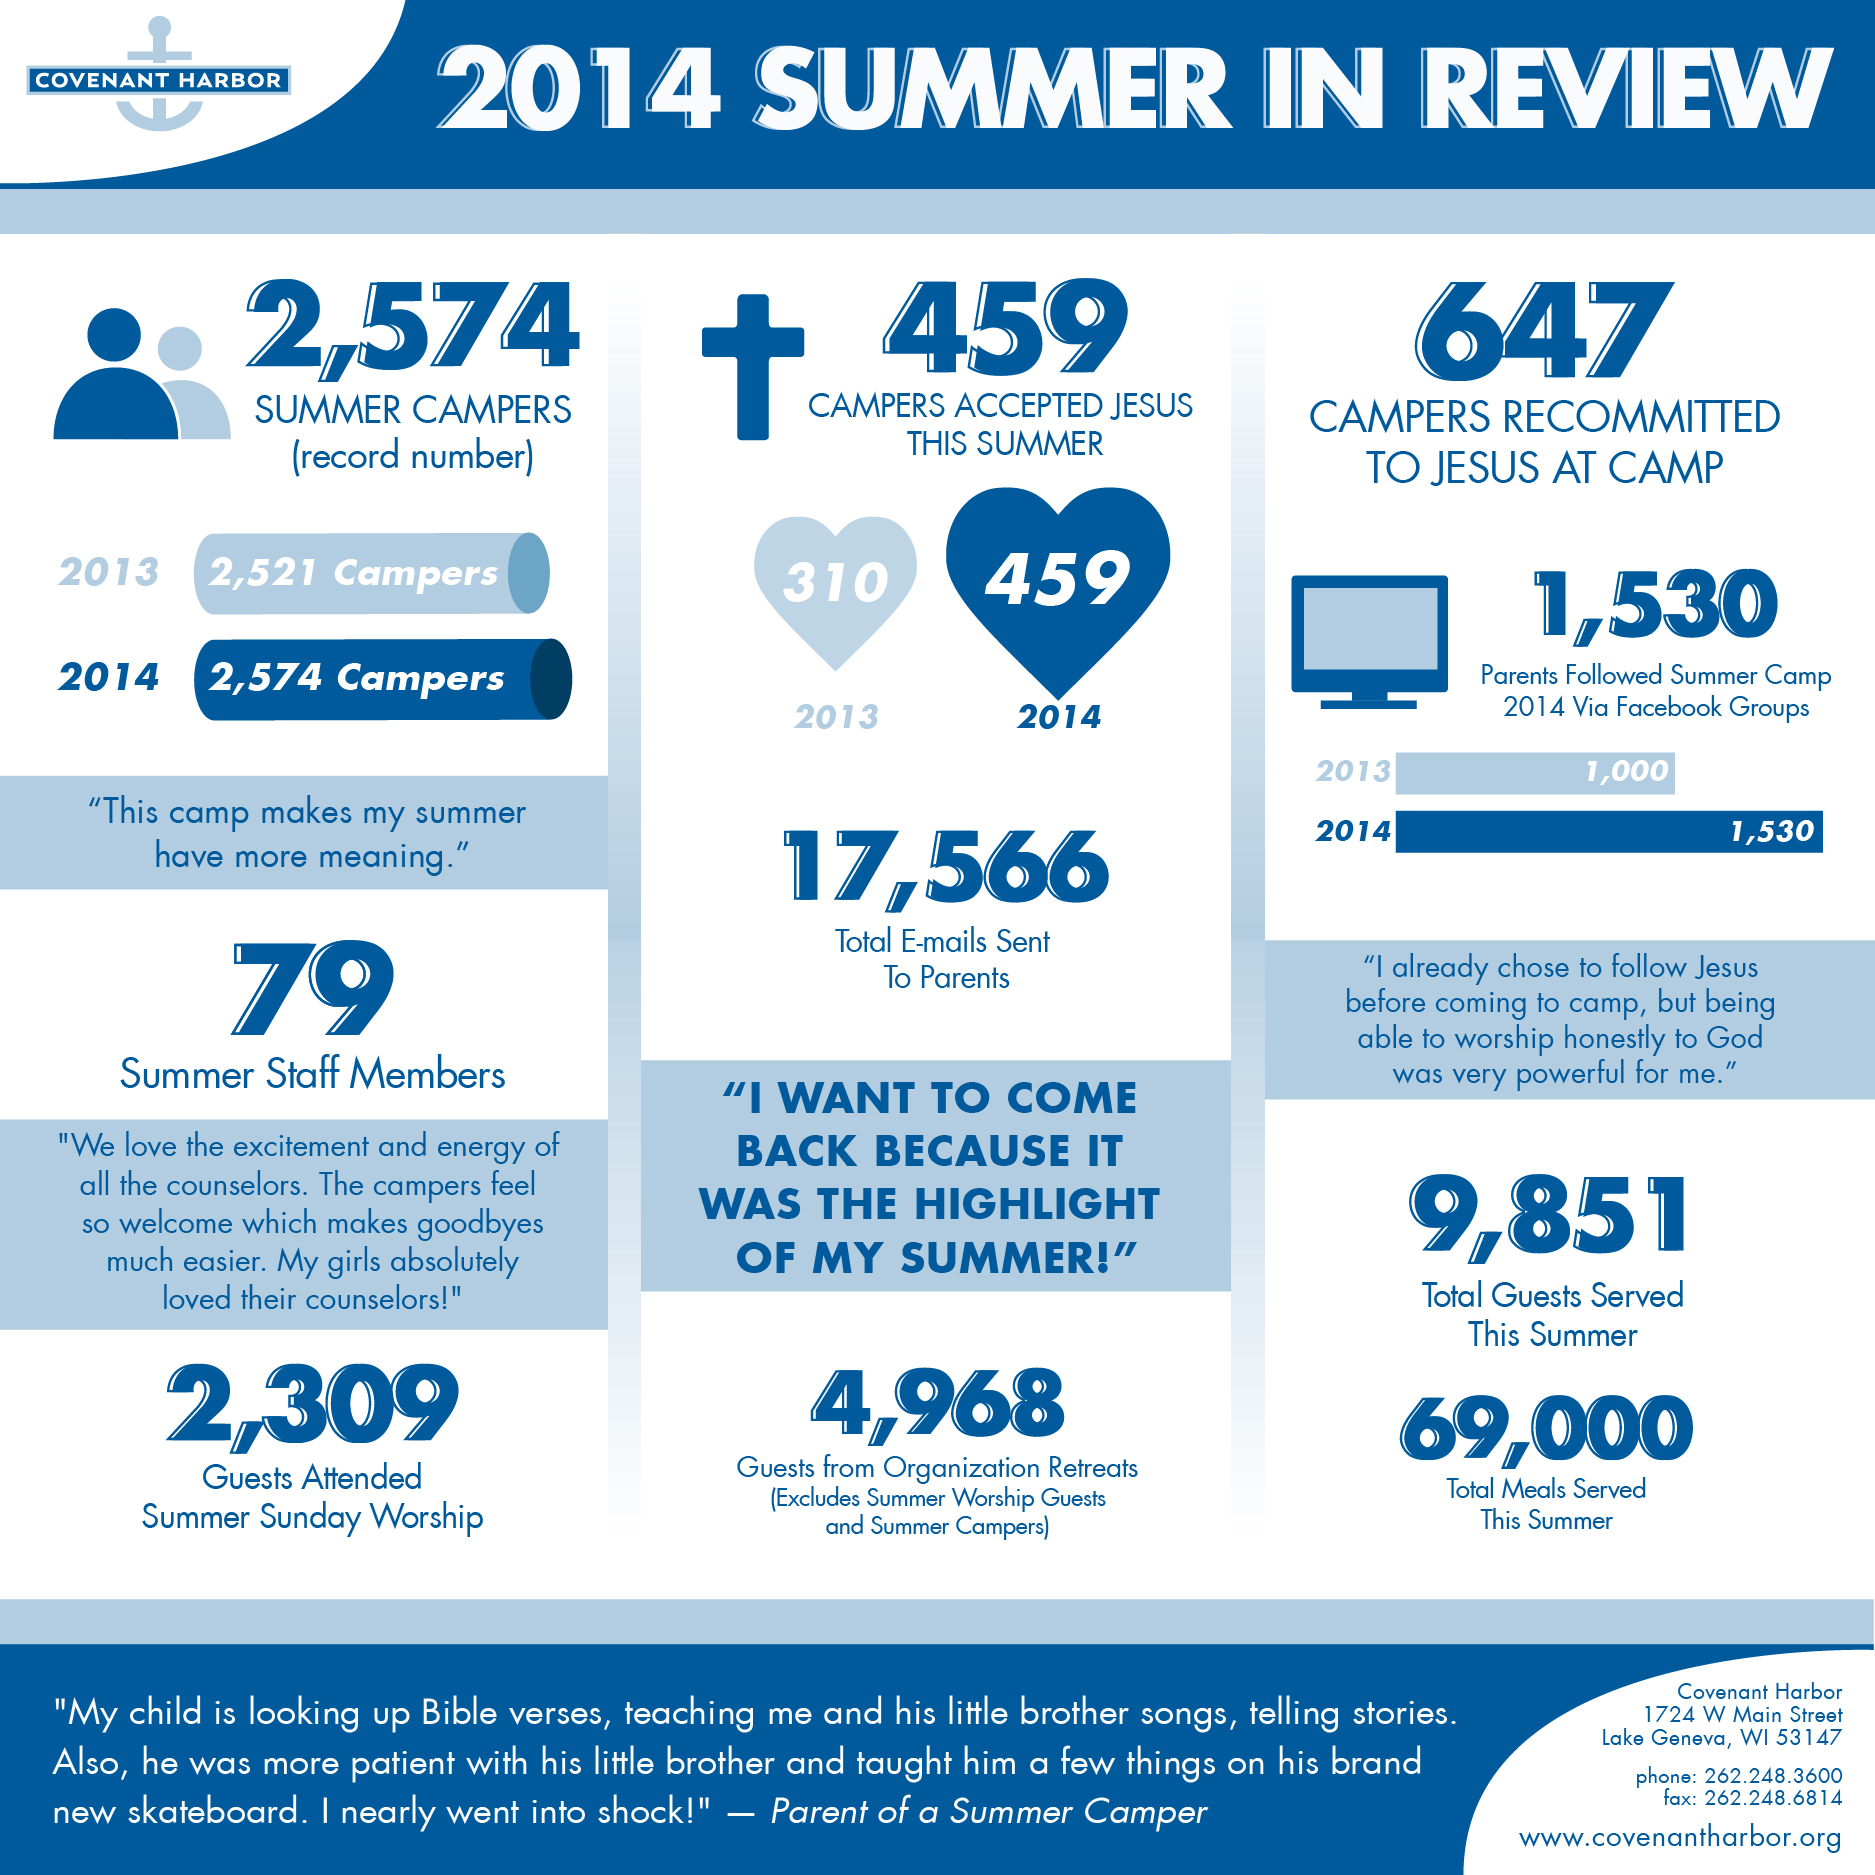 Covenant Harbor Summer Camp in Review